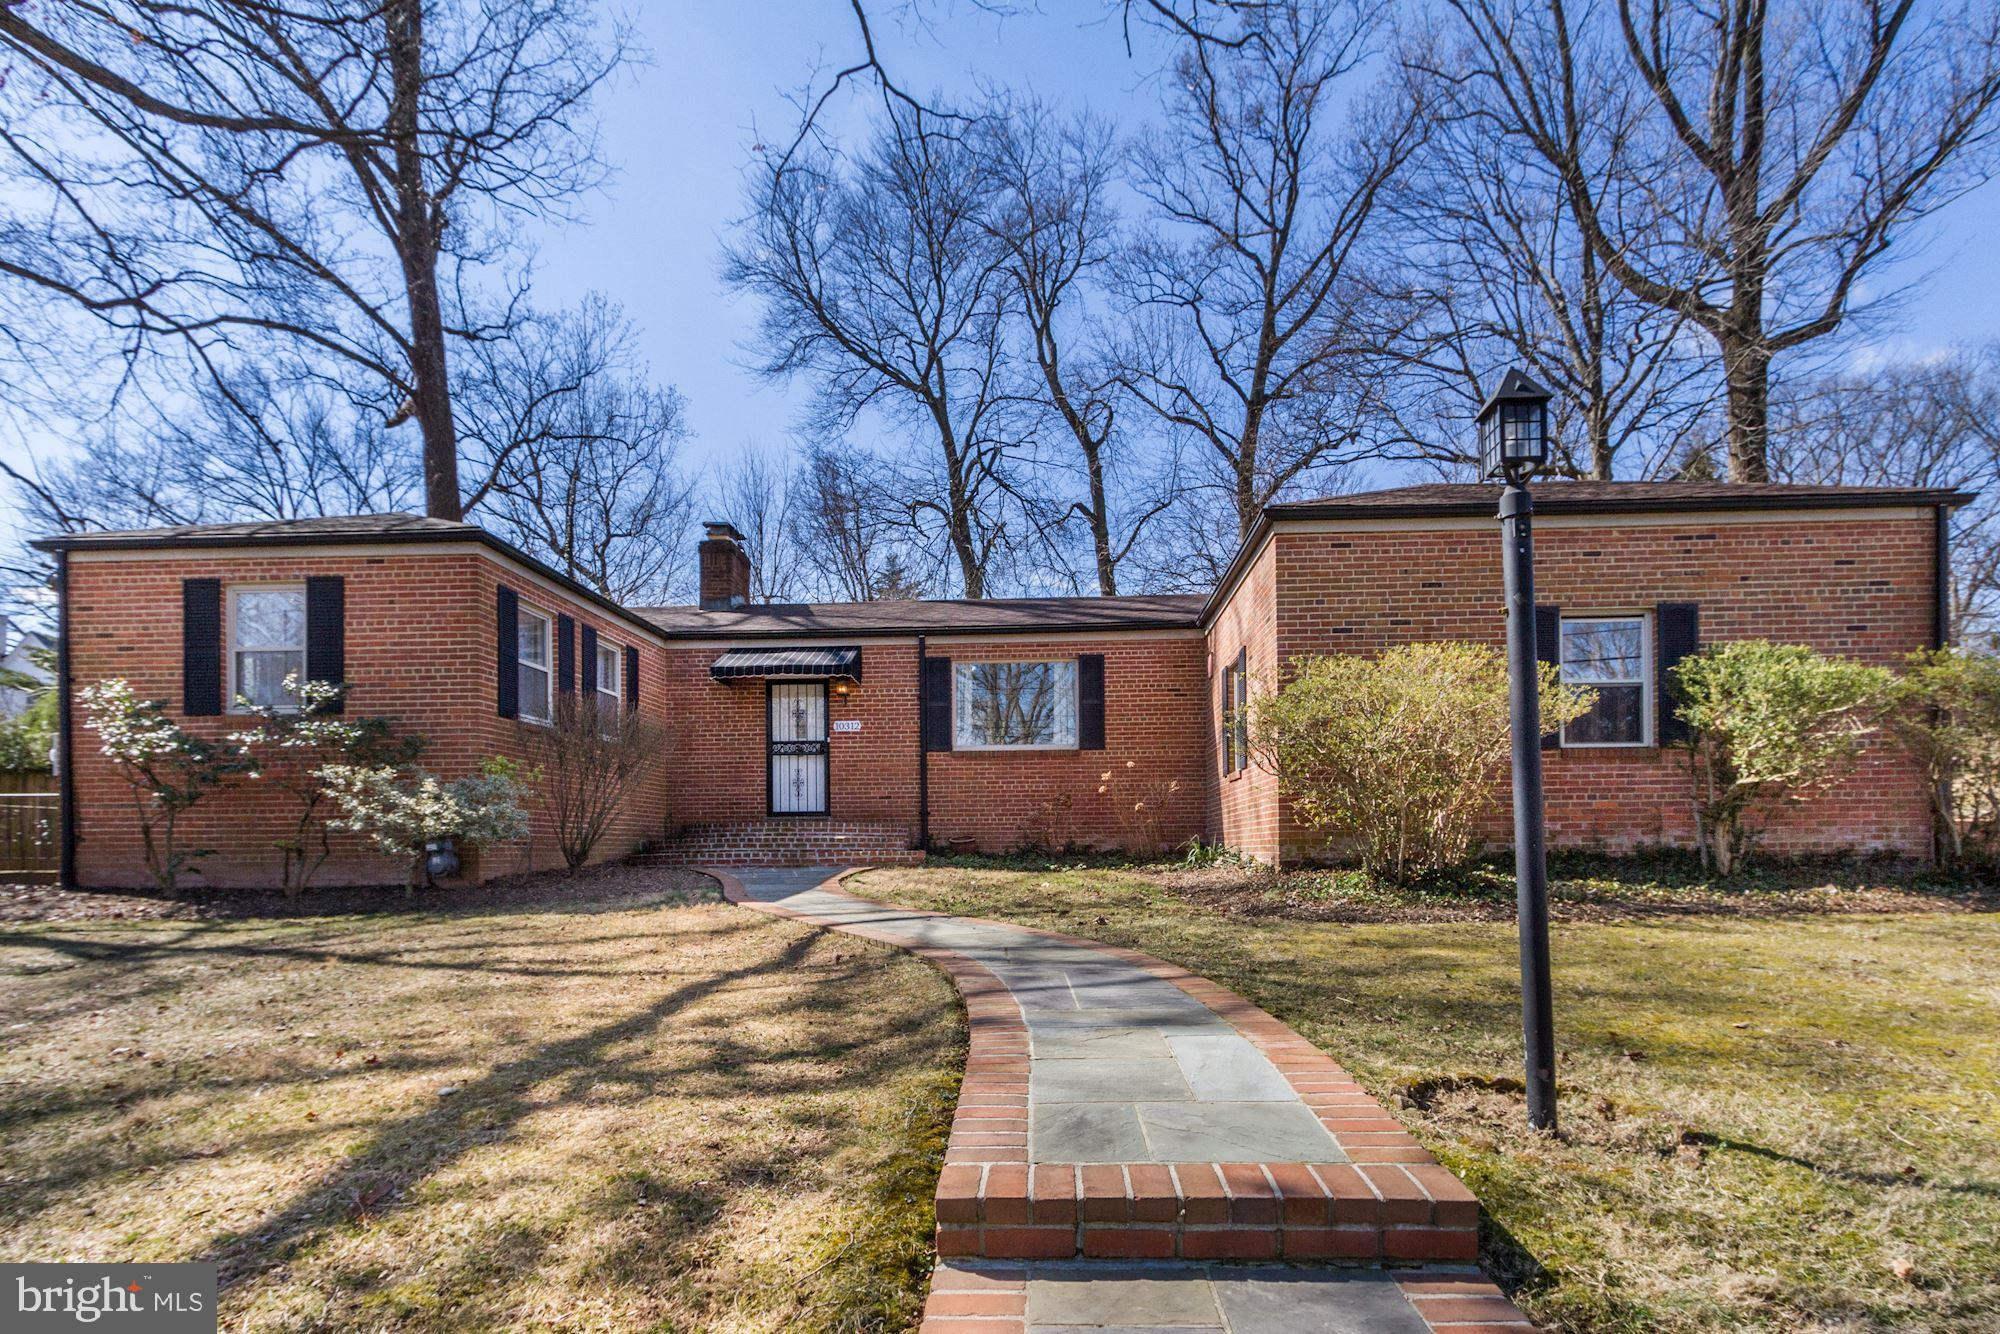 10312 CRESTMOOR DRIVE, SILVER SPRING, MD 20901